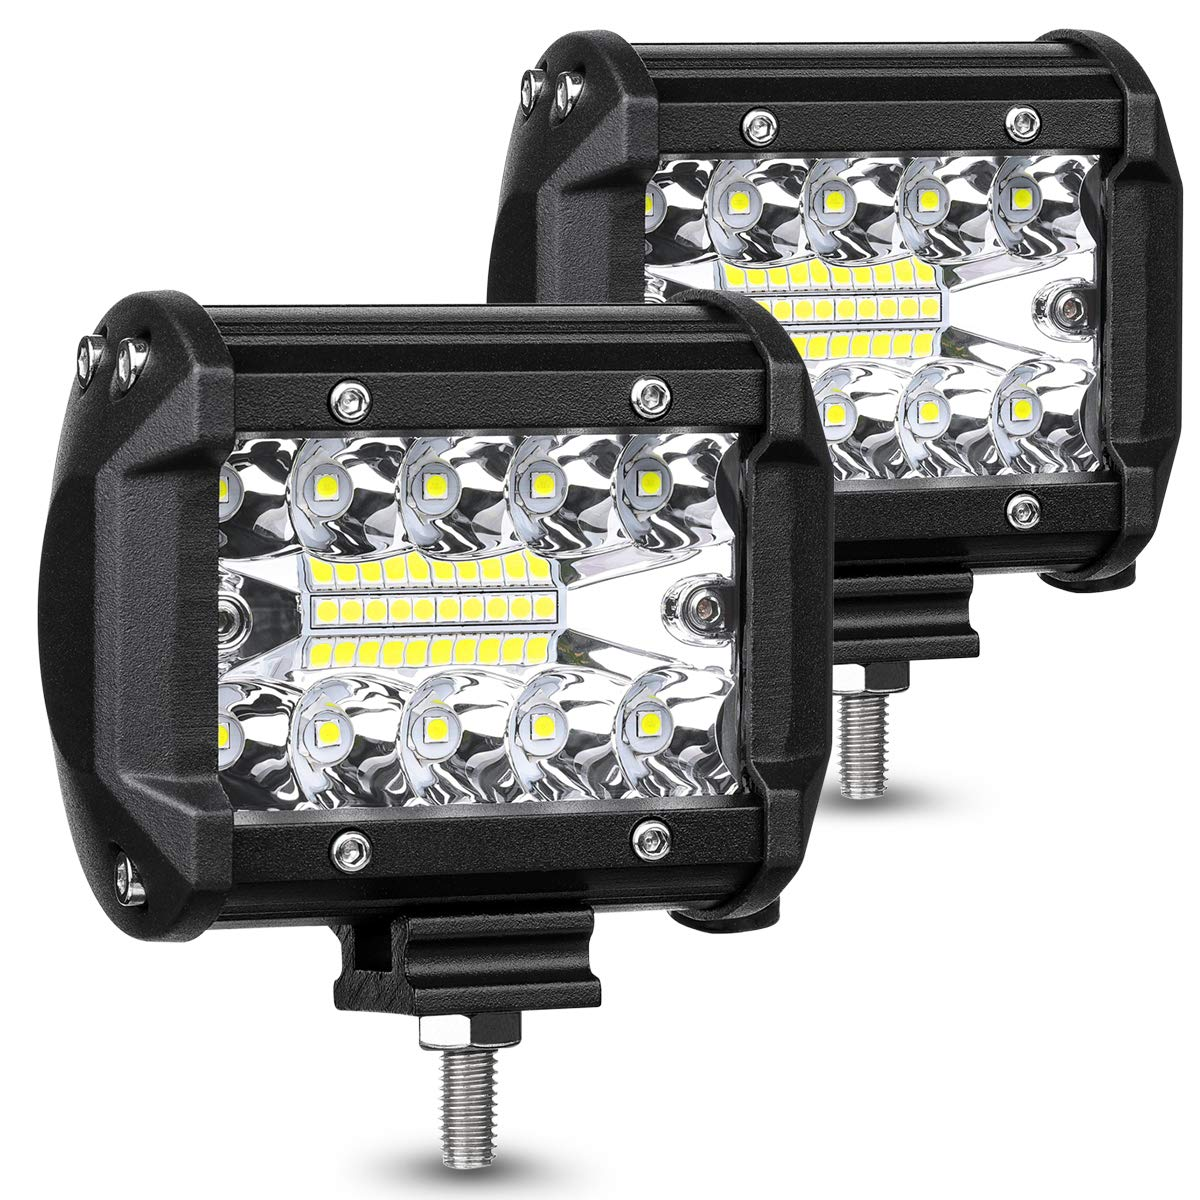 AMBOTHER LED Pods Light Bar